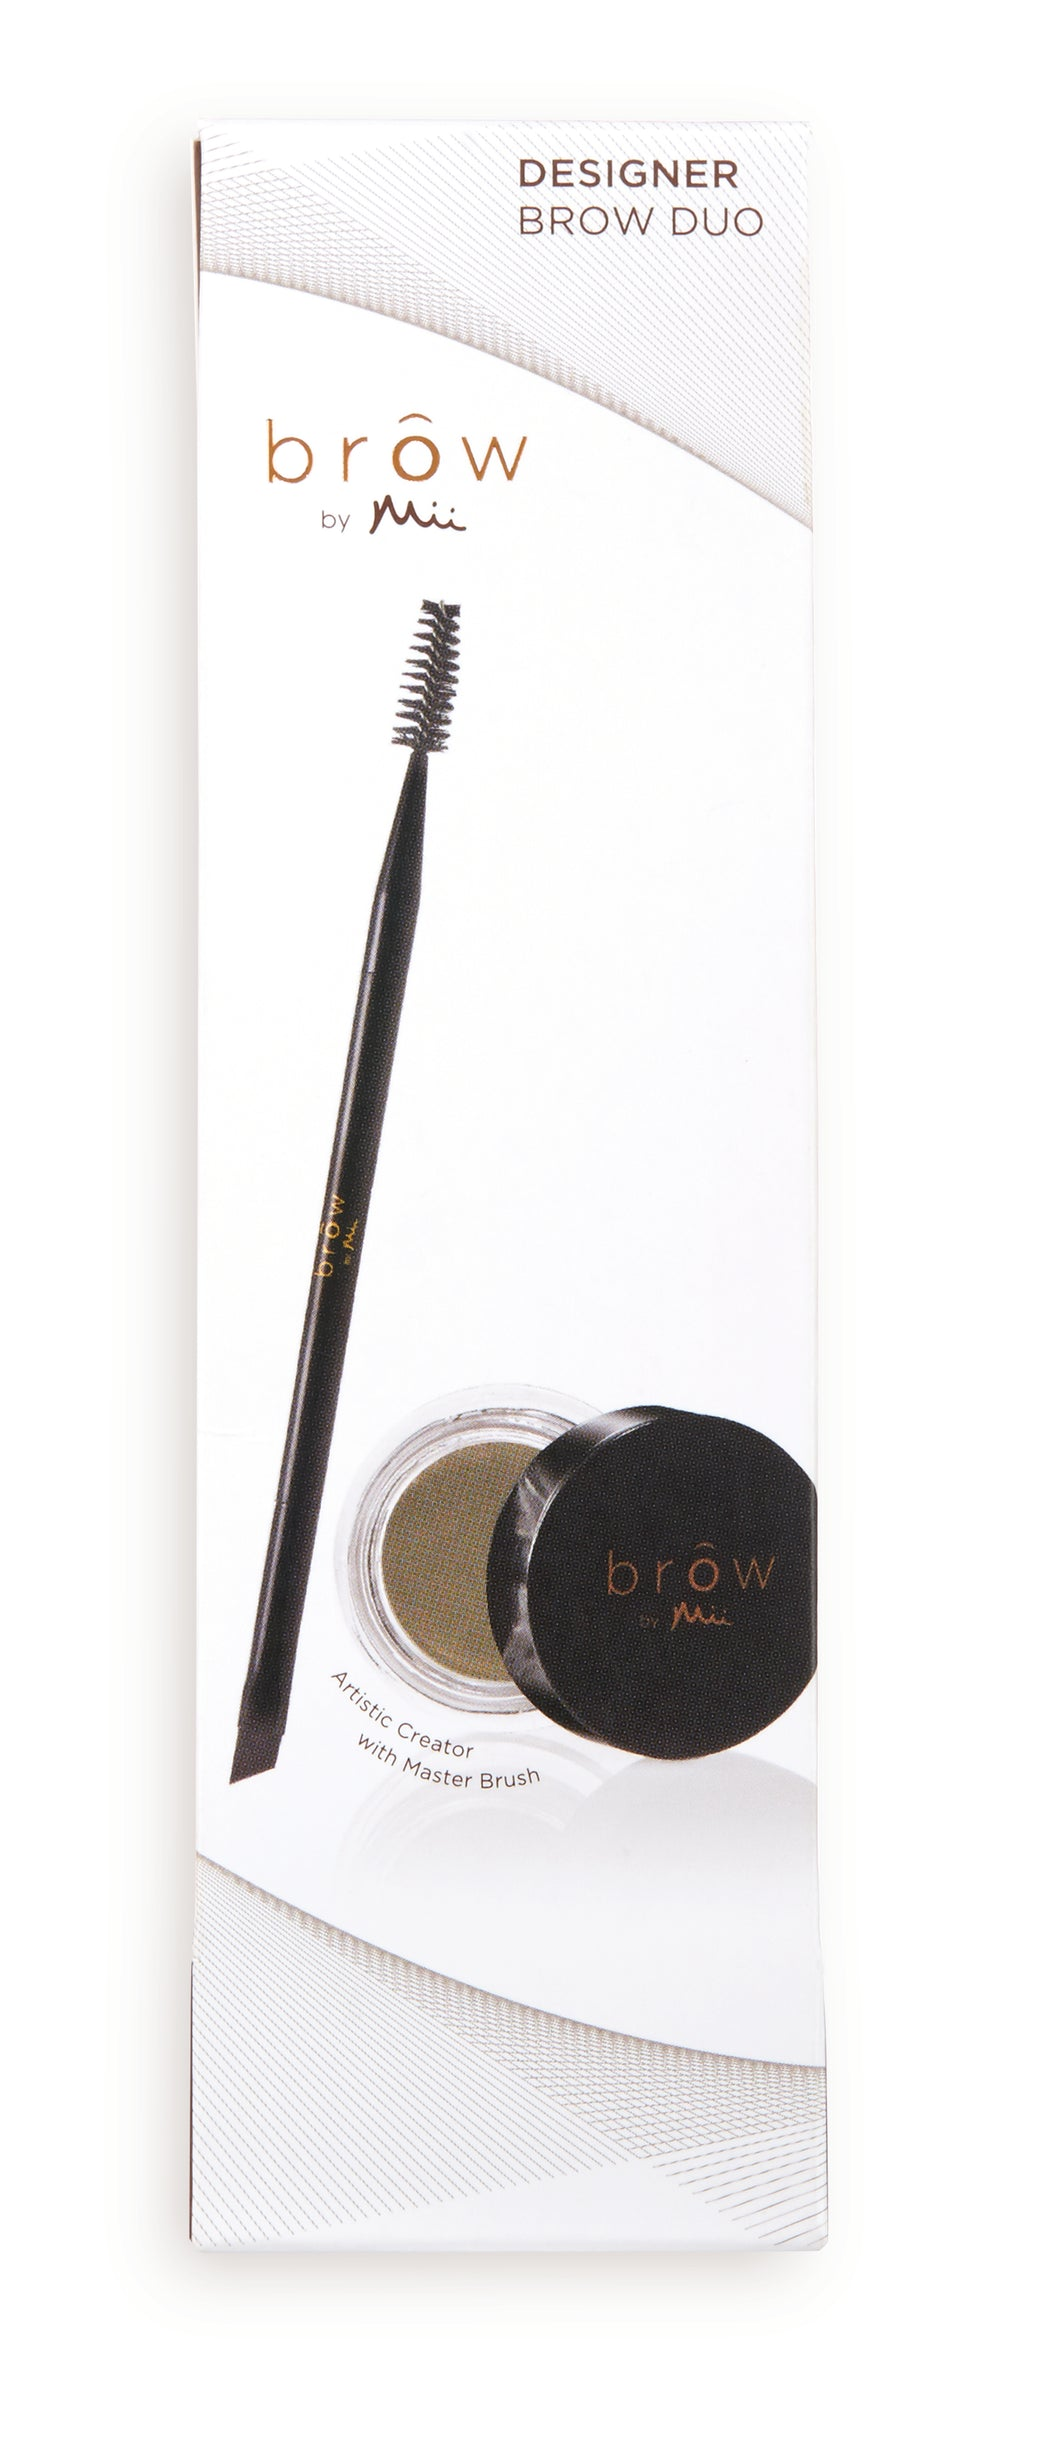 Designer Brow Duo